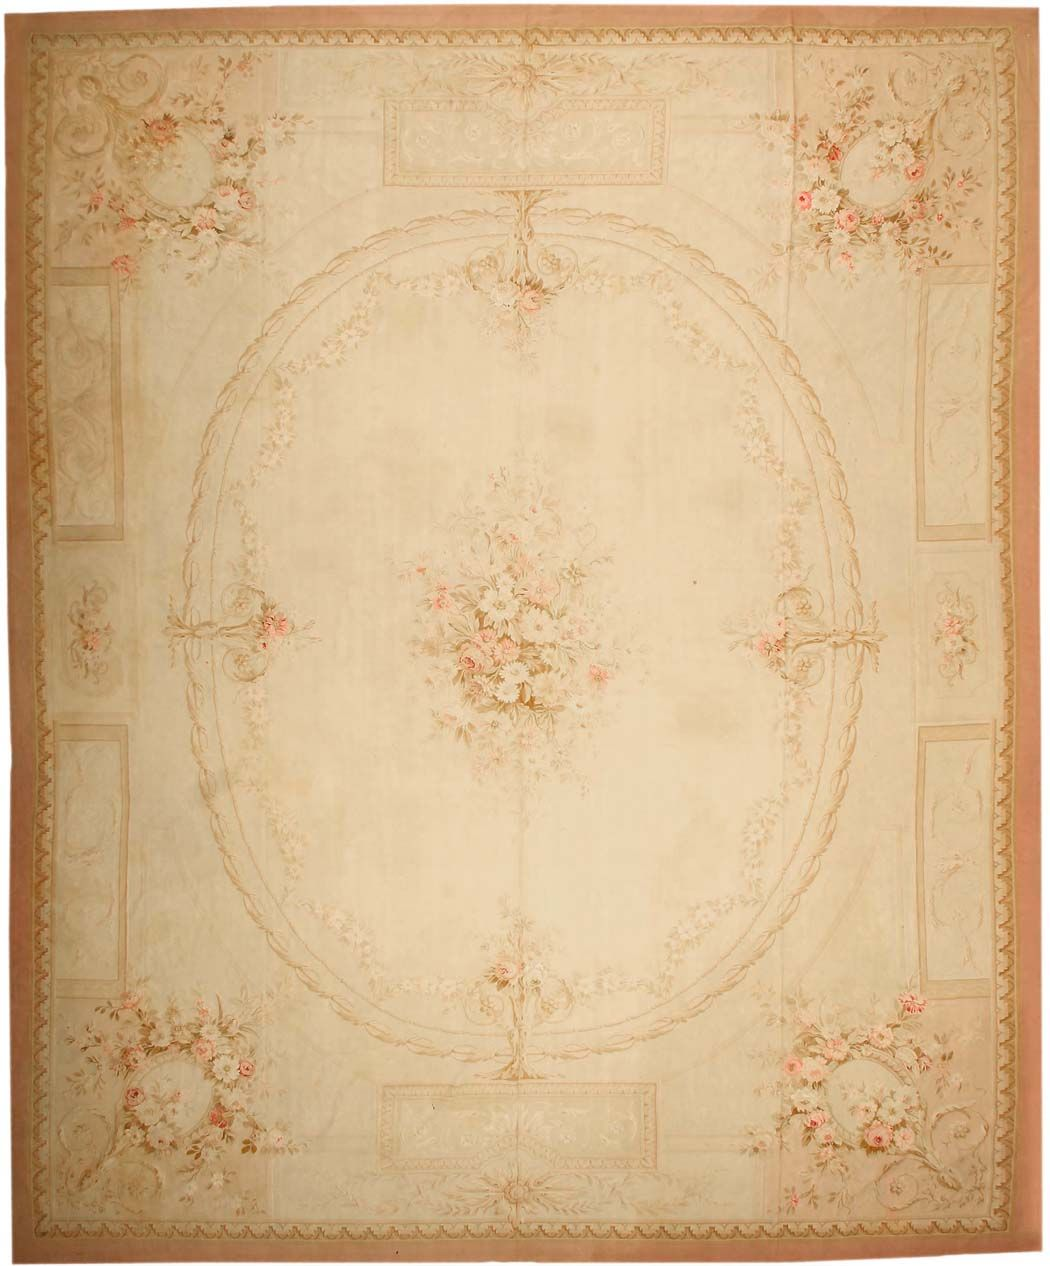 Antique Aubusson French Rugs #43633  http://nazmiyalantiquerugs.com/antique-rugs/aubusson/